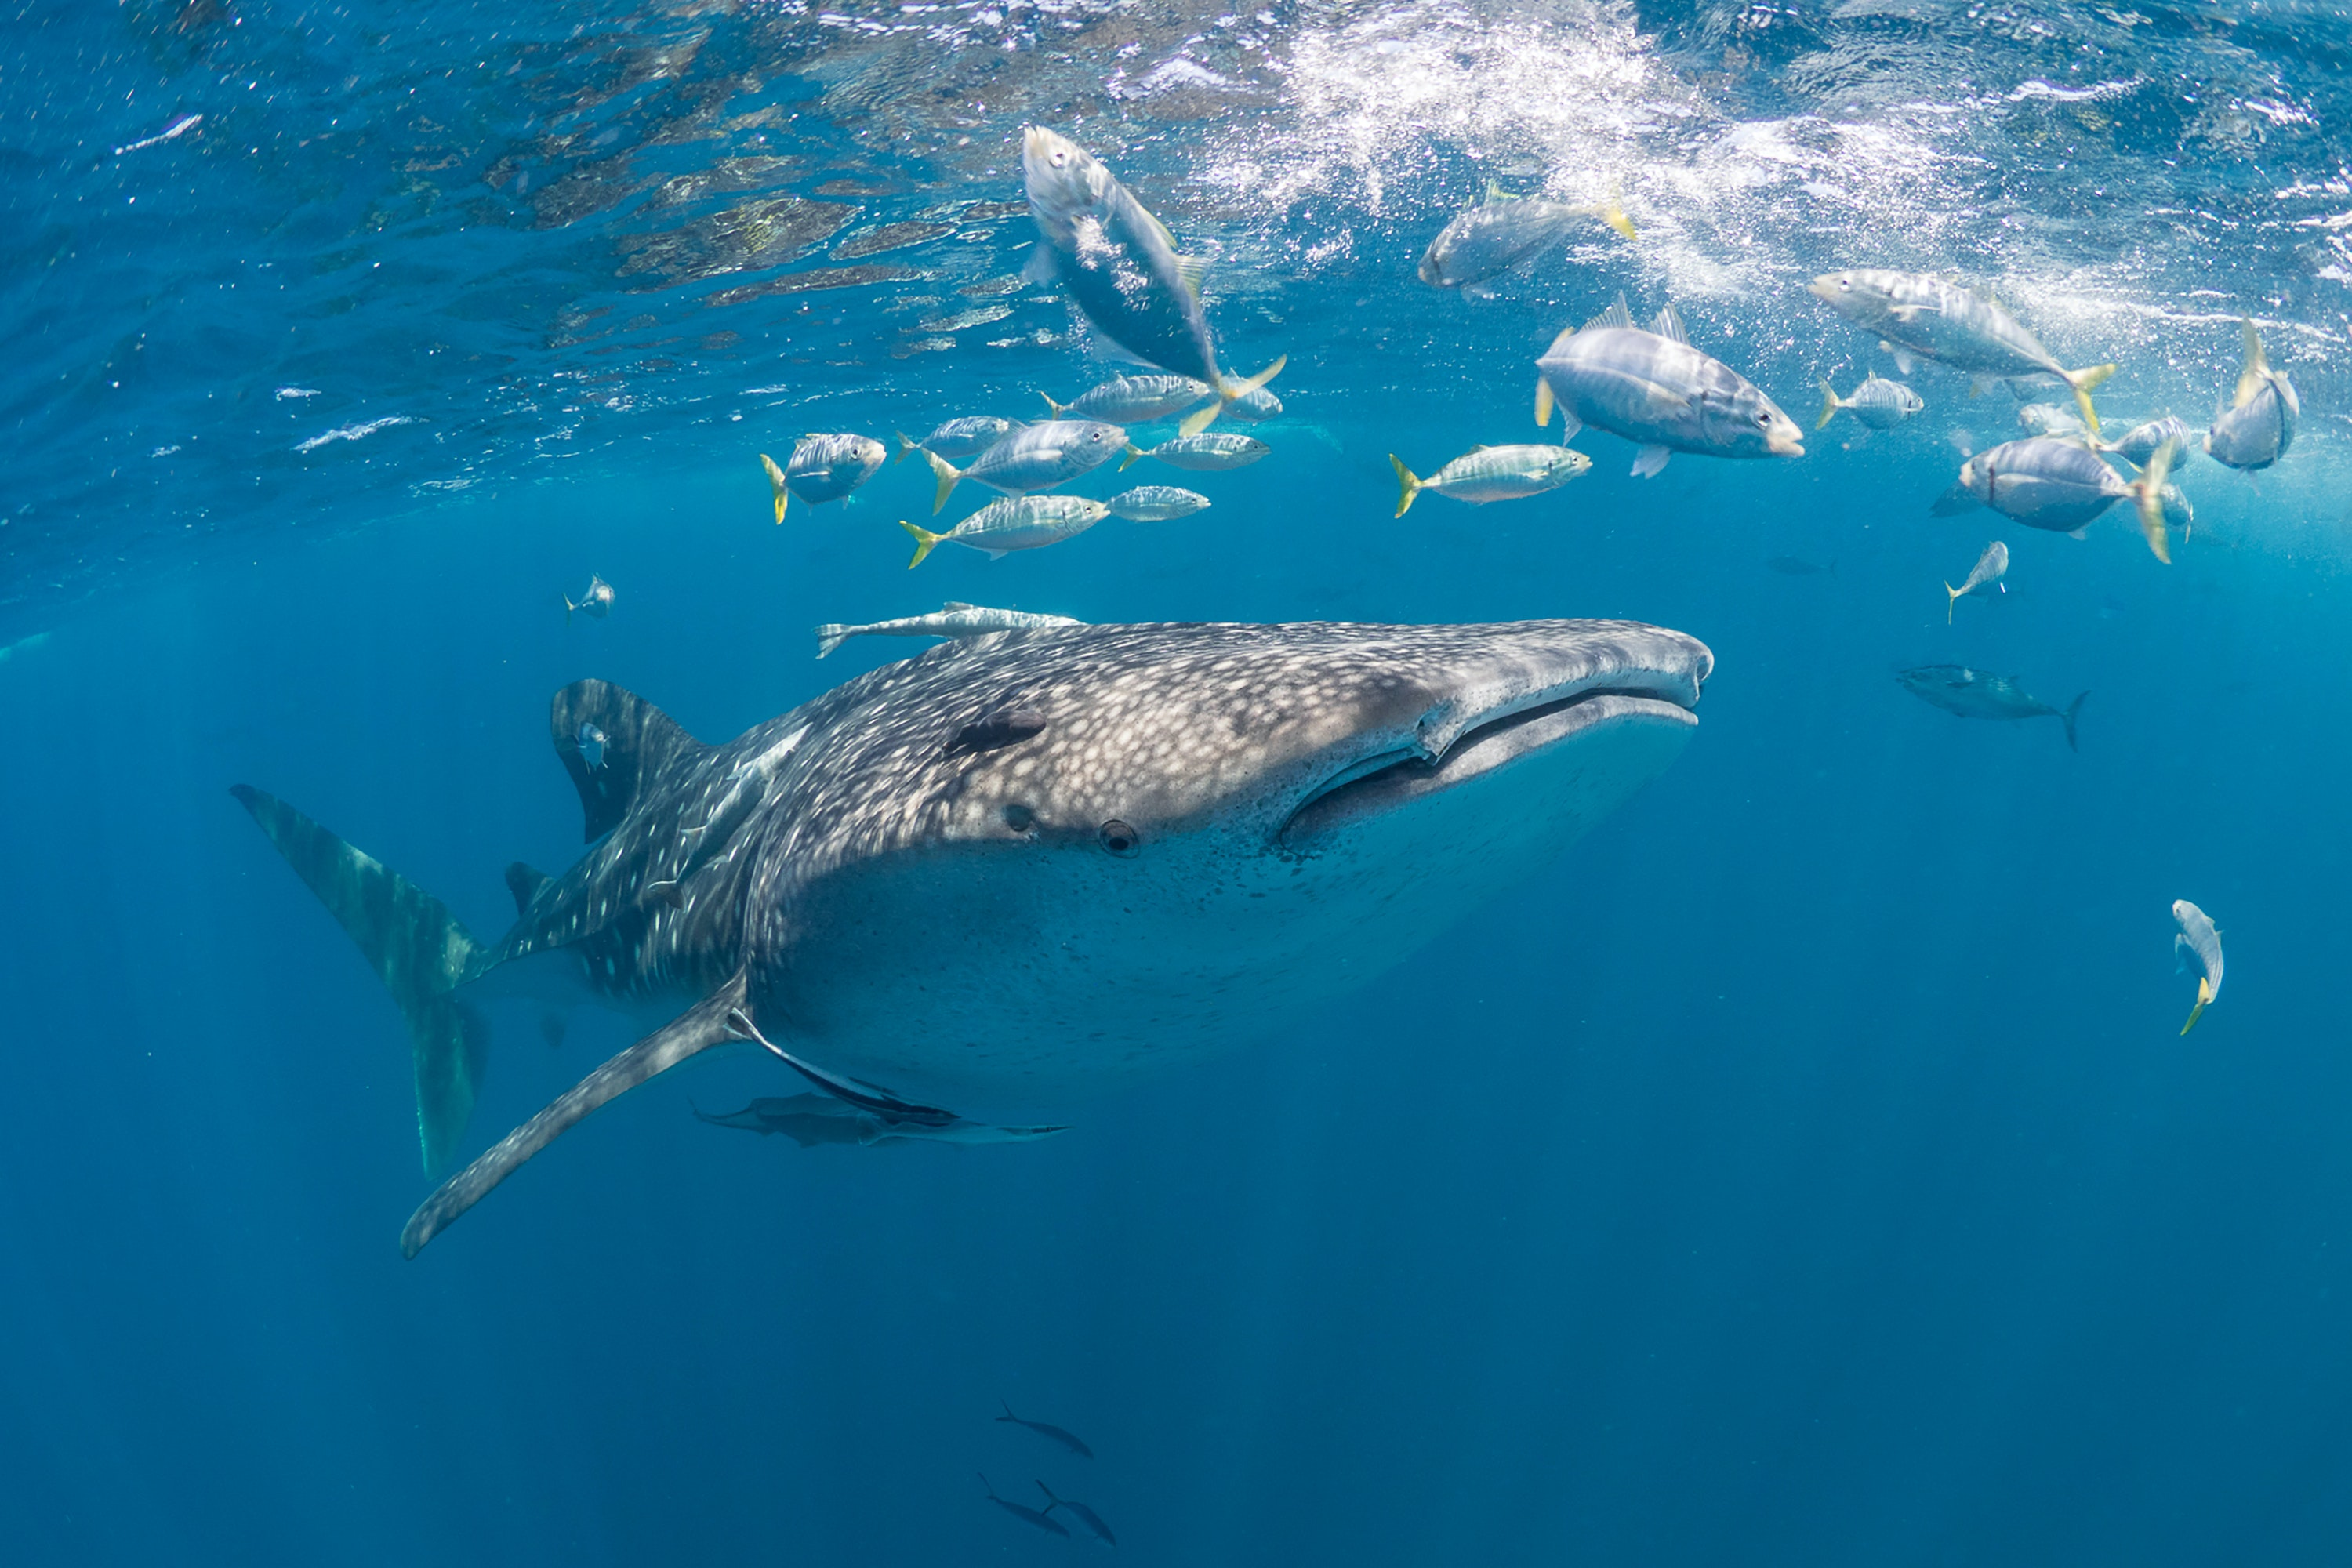 Whale sharks eat plankton and fish eggs and are harmless to humans.